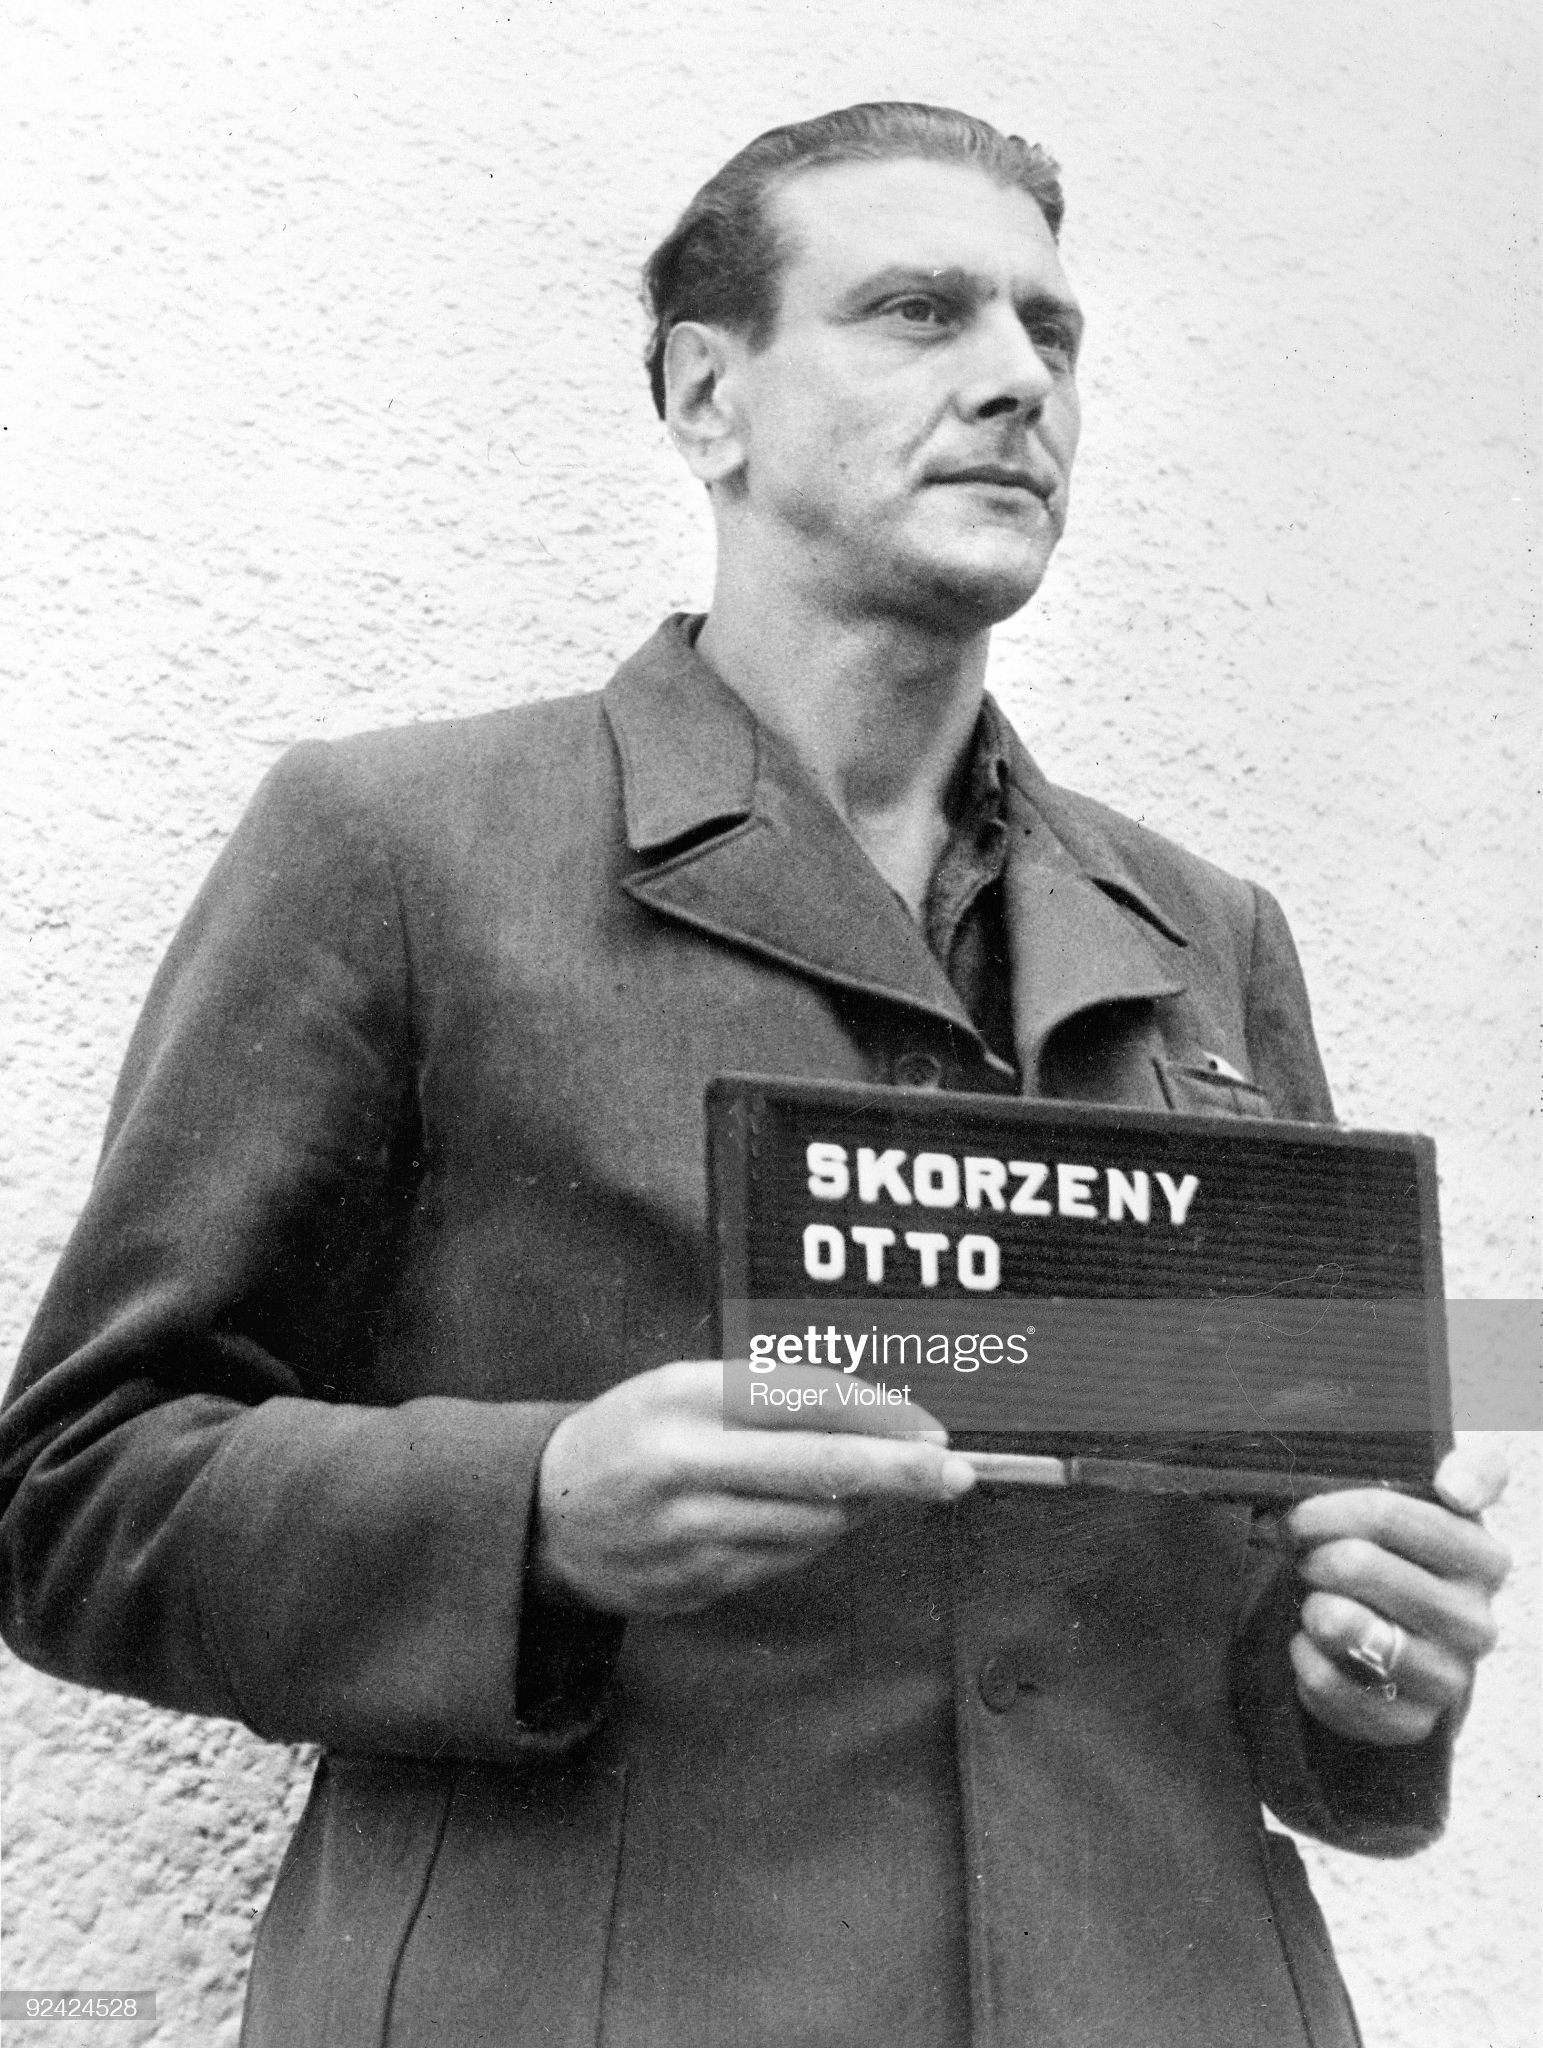 قائد الكوماندوس النازي Otto Skorzeny  Otto-skorzeny-austrian-officer-who-freed-mussolini-photographed-his-picture-id92424528?s=2048x2048